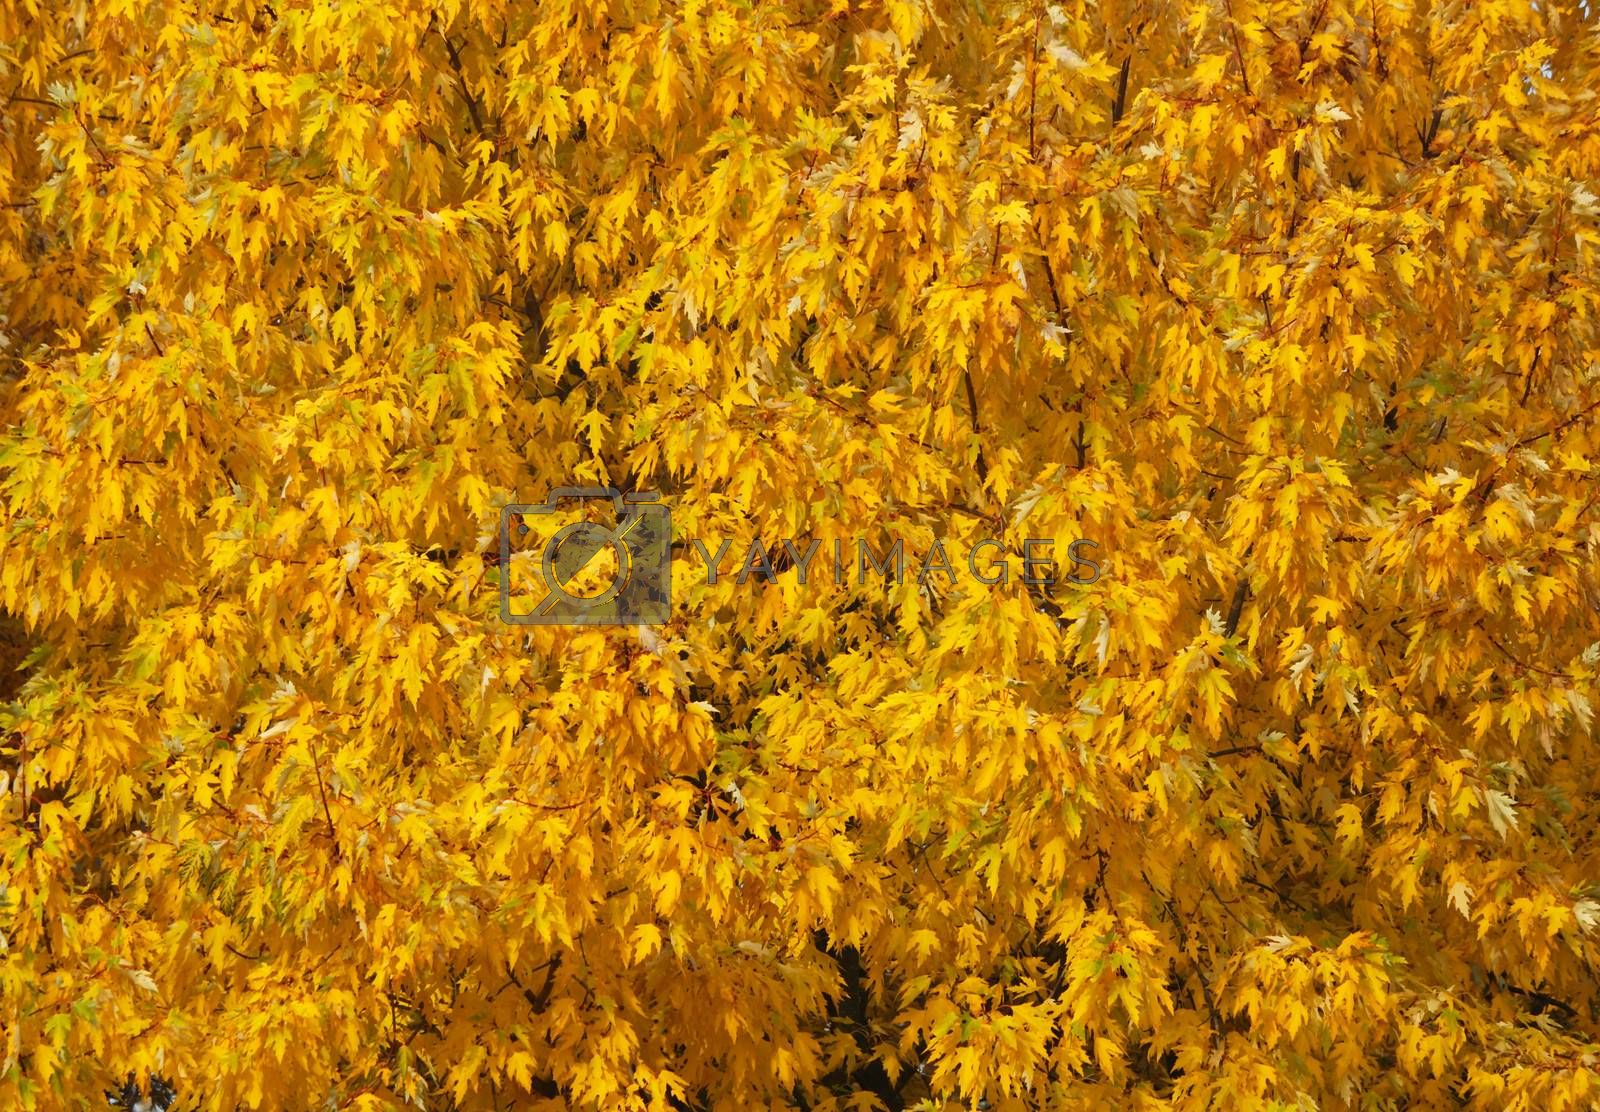 Fragment of the thick crown of a tree in autumn with a lot of leaves of yellow color (background image).